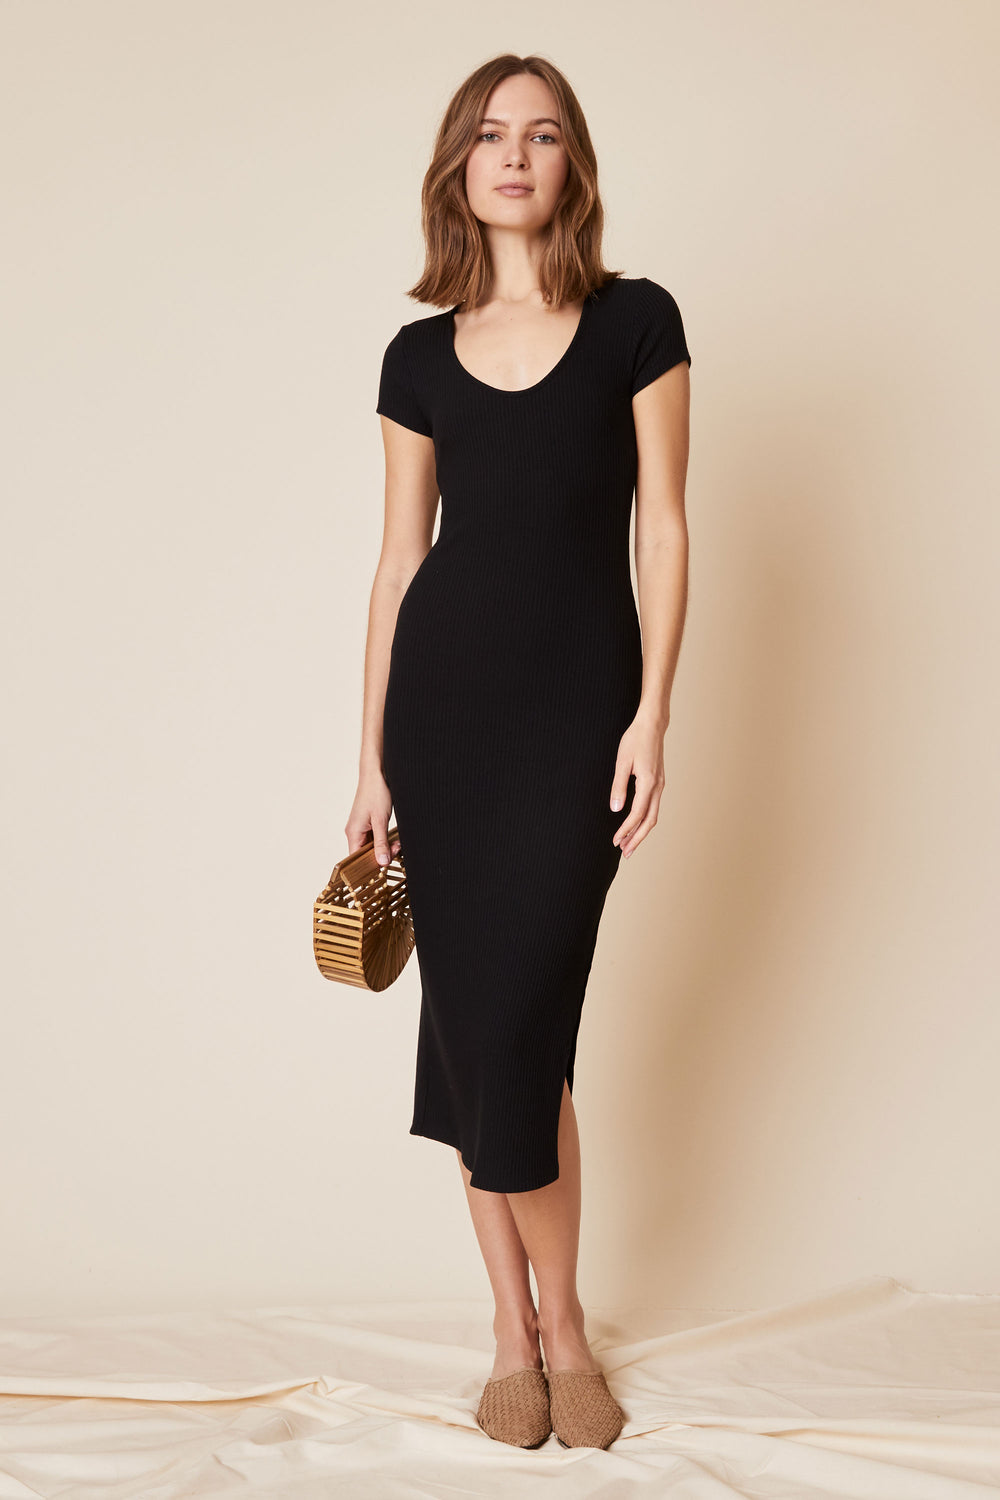 Rachel Dress in Black Rib - Whimsy & Row